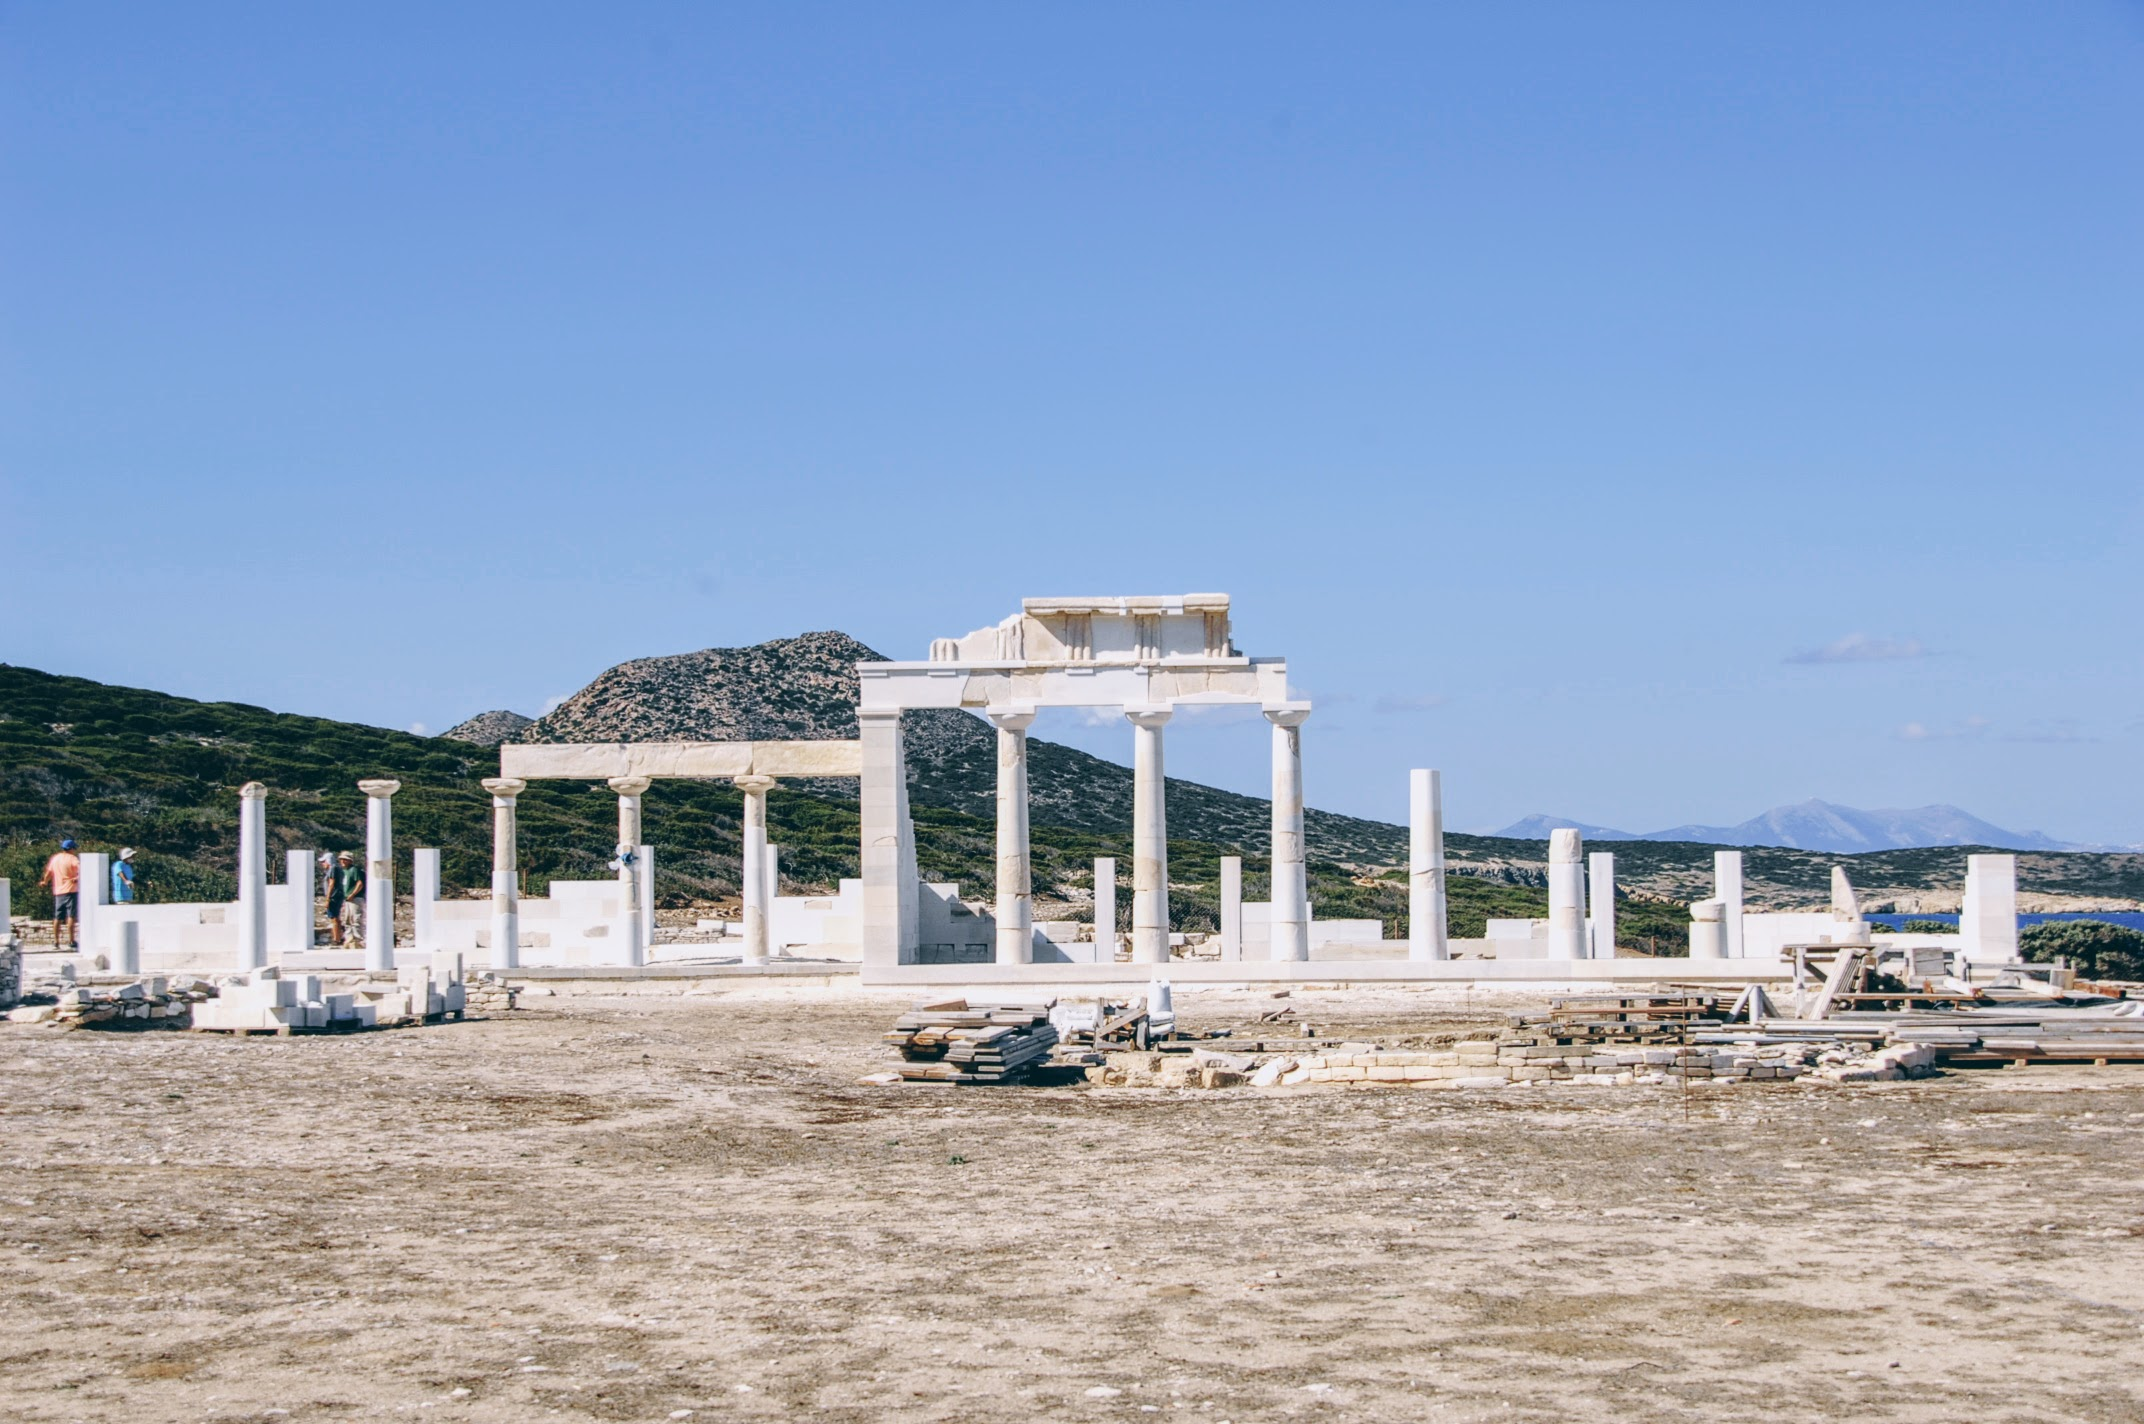 ET (7 hours): [Paros] Antiparos & Despotiko Islands